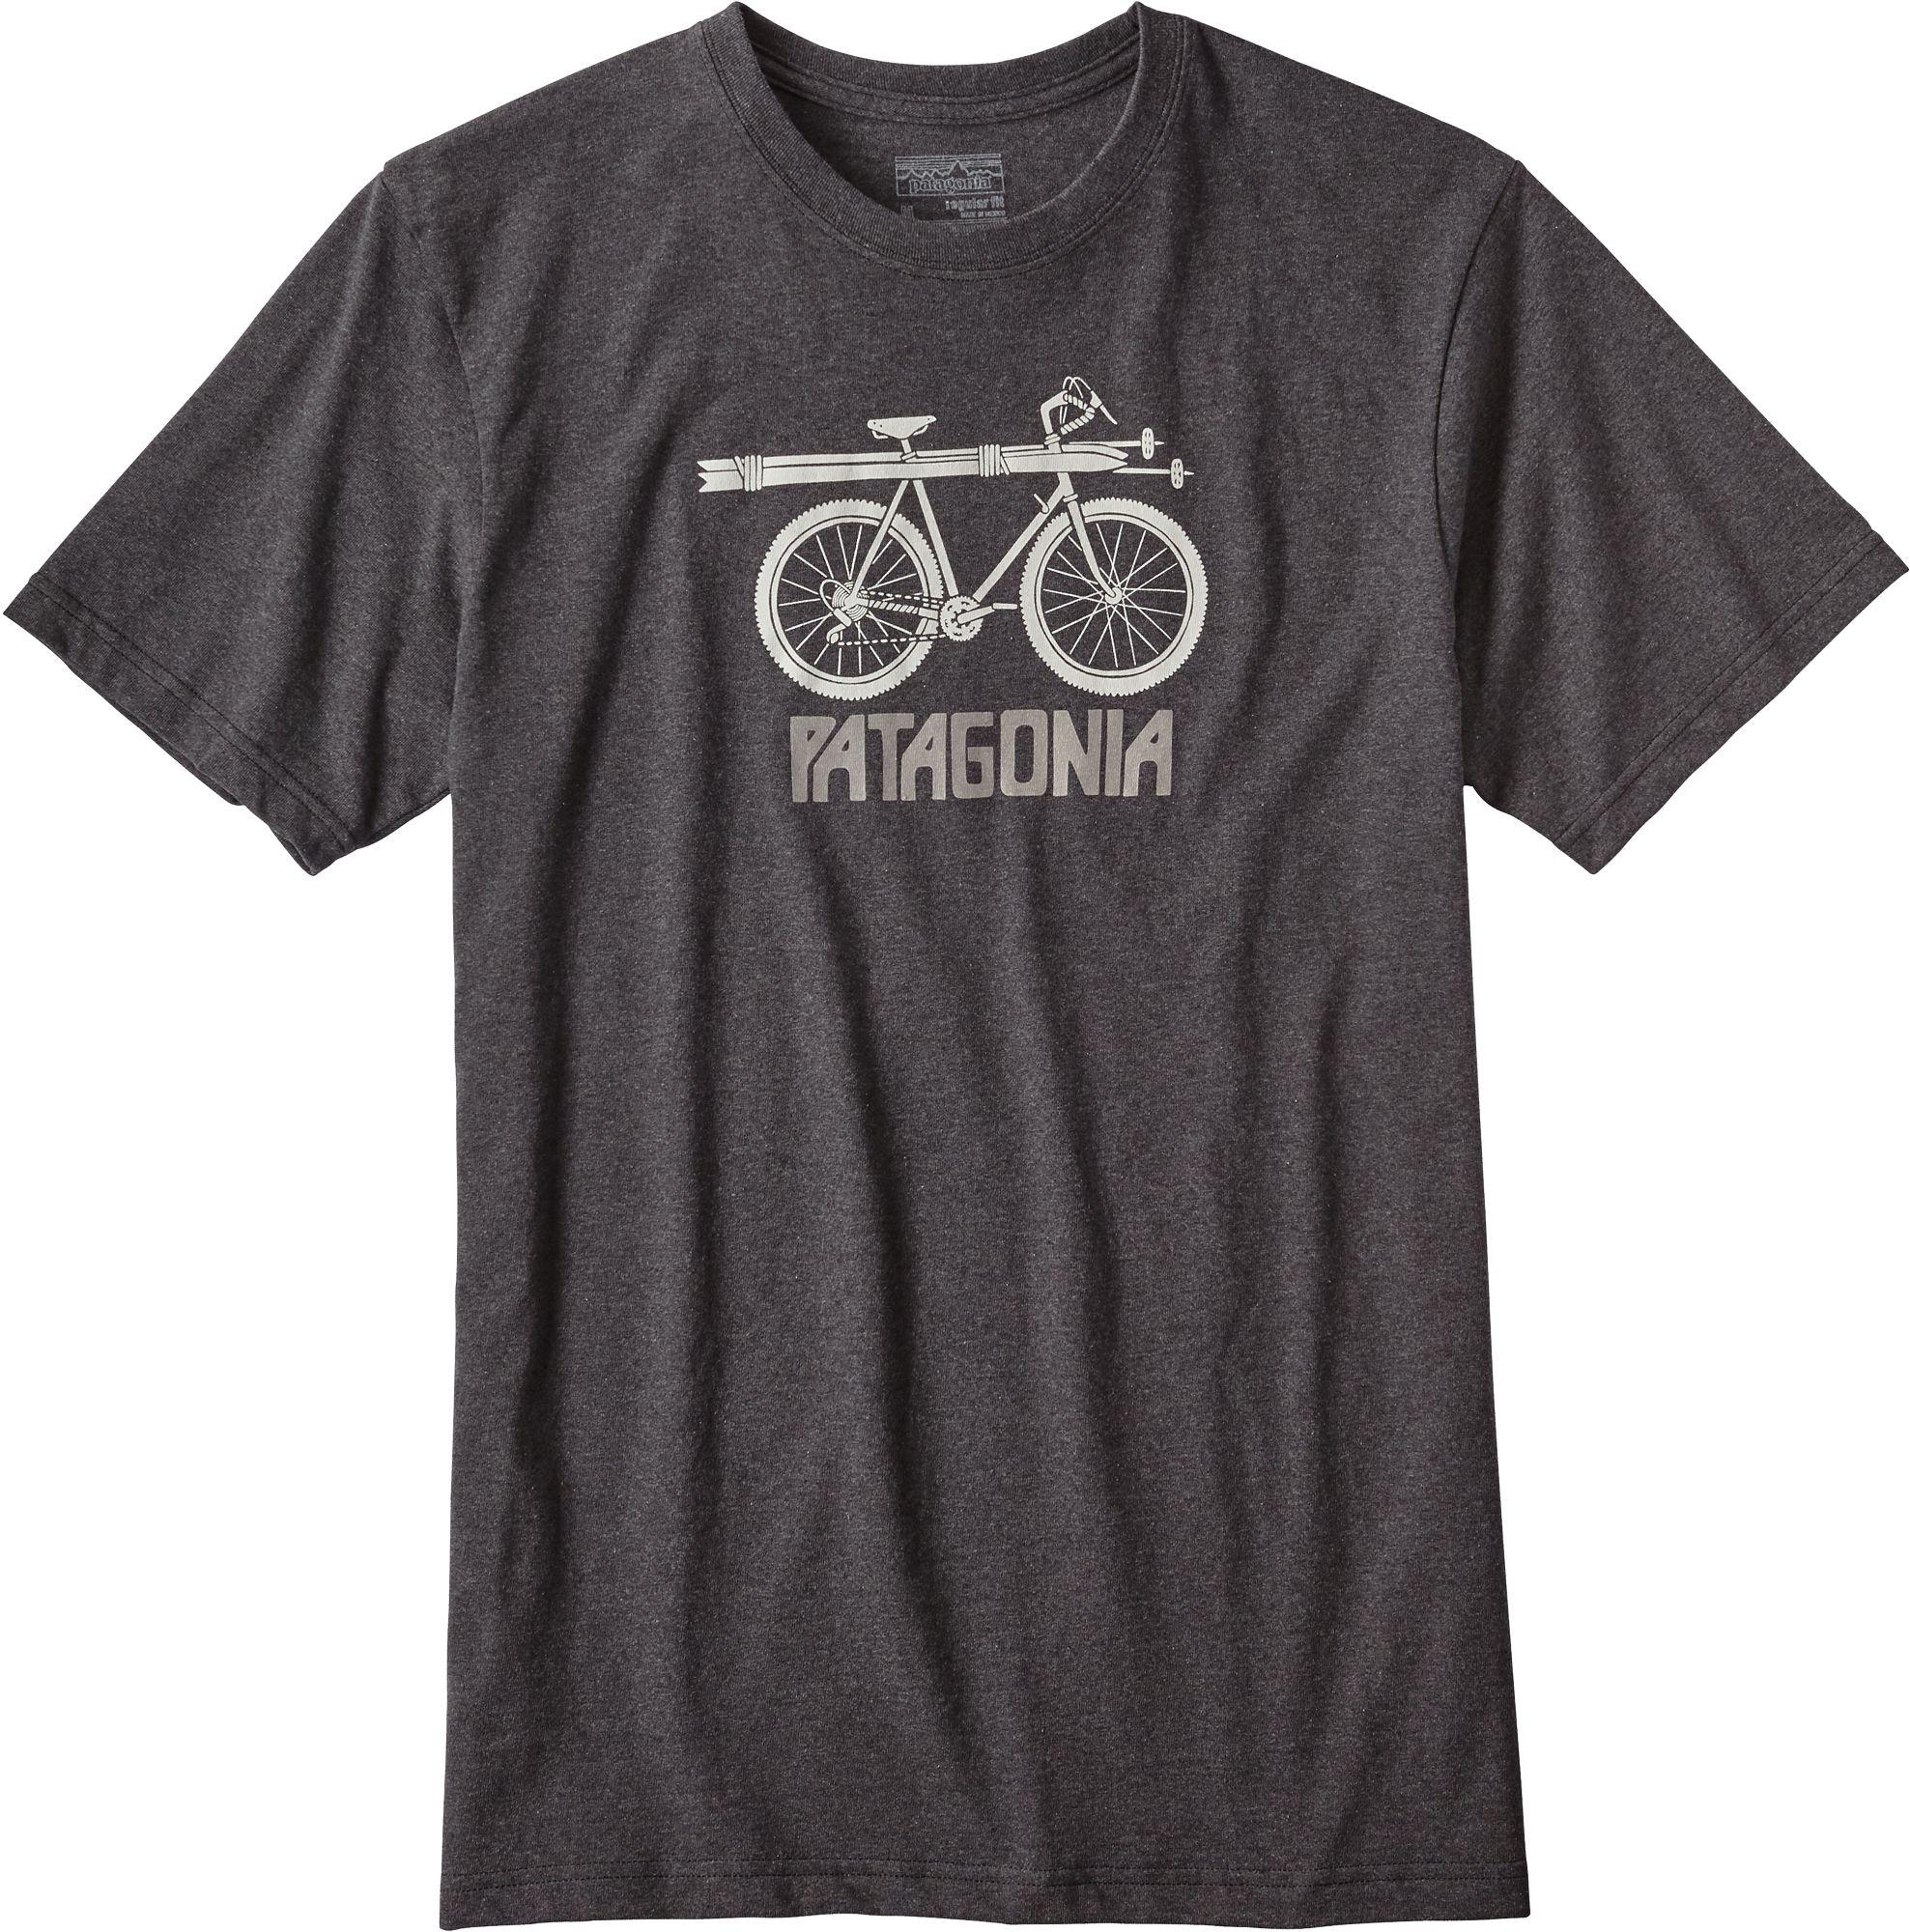 Snow Men Lyst Cycle For Patagonia In Gray T Shirt 5q4nzfHqR 7299127f71a6